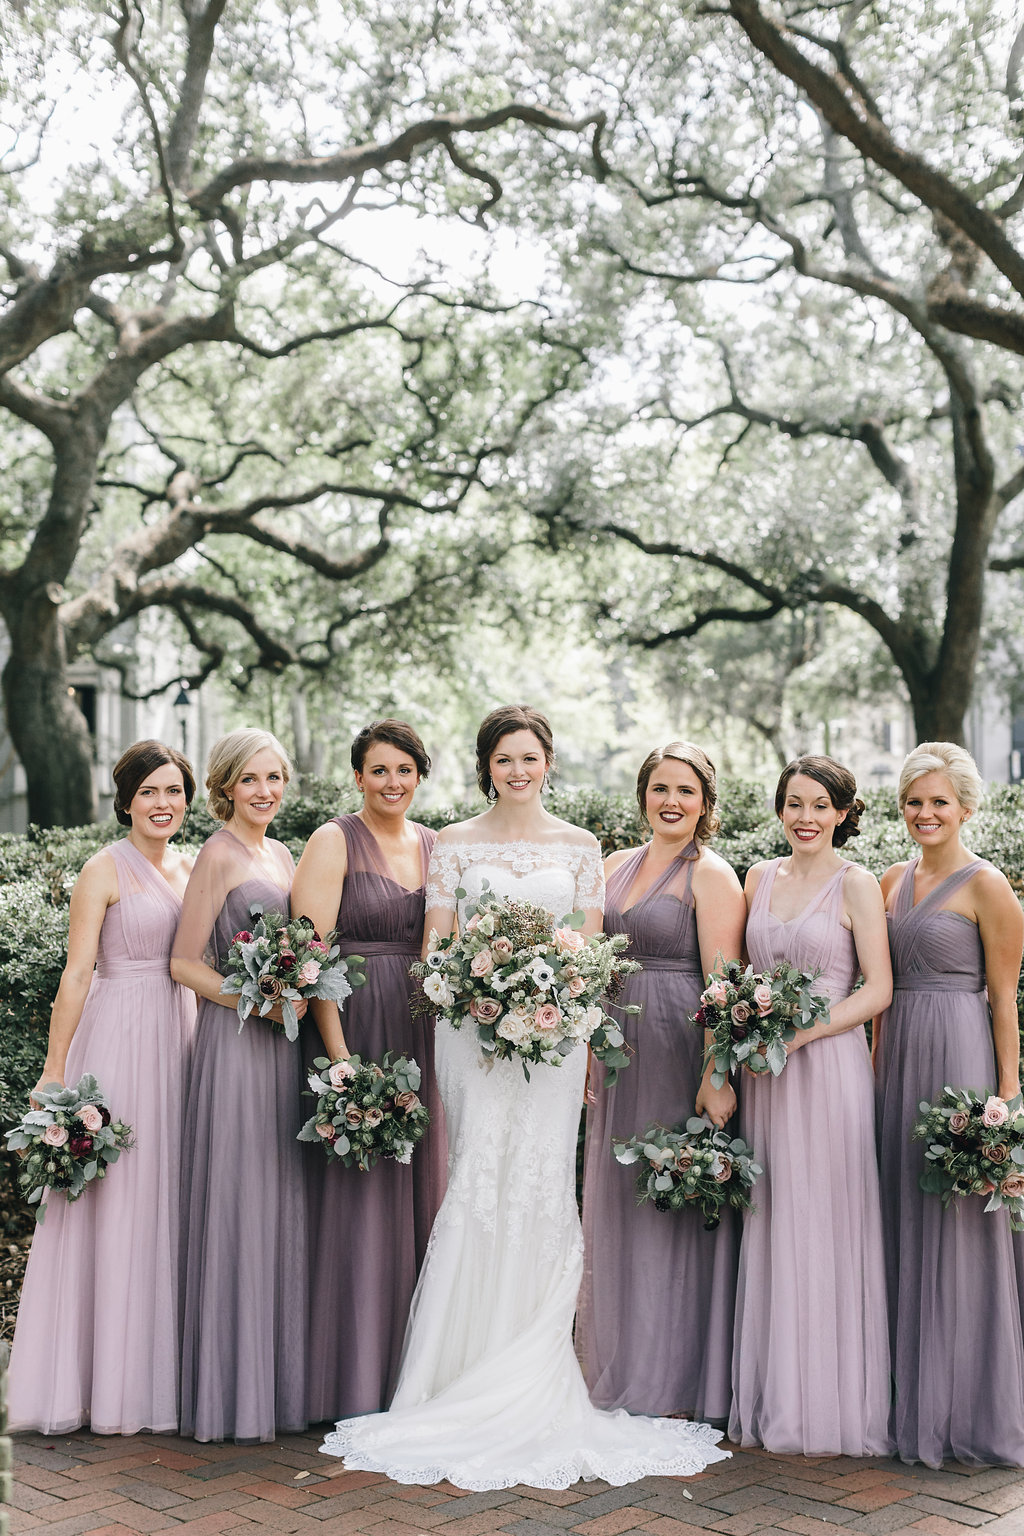 This wedding was elegant, timeless and with a strong southern feel